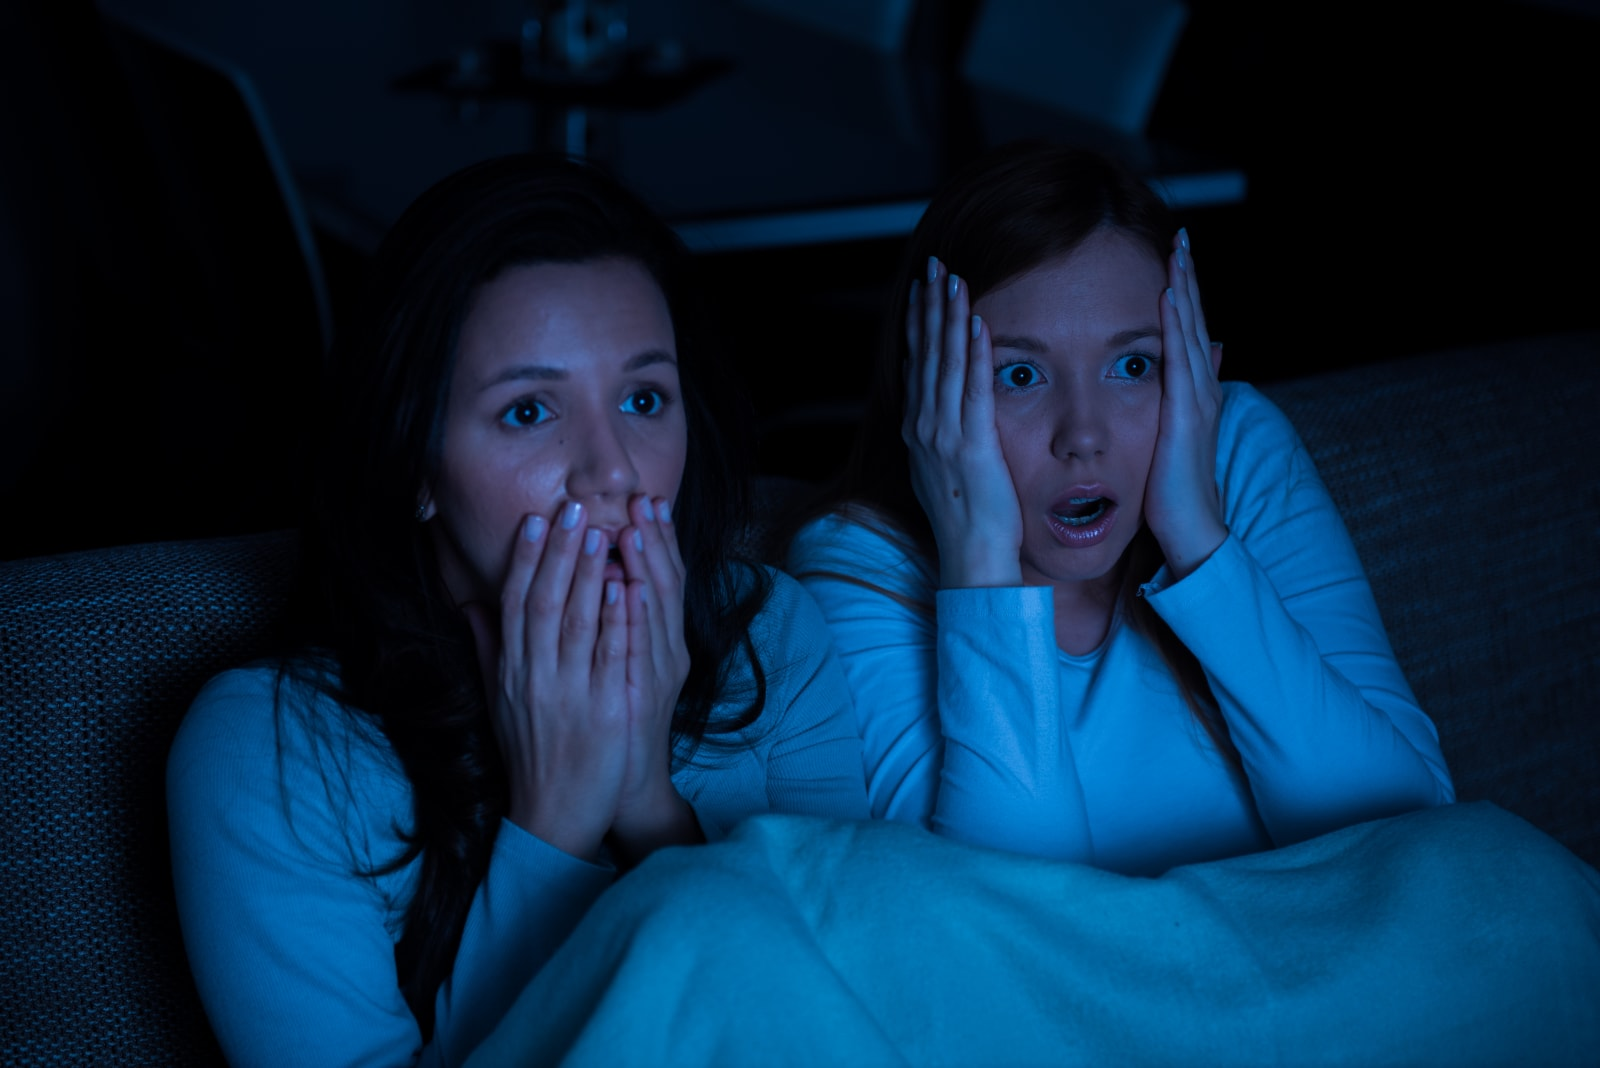 - dims crop 6016 2C4016 2C0 2C0 quality 85 format jpg resize 1600 2C1068 image uri http 3A 2F 2Fo - Hulu's latest exclusive is an indie-horror anthology series